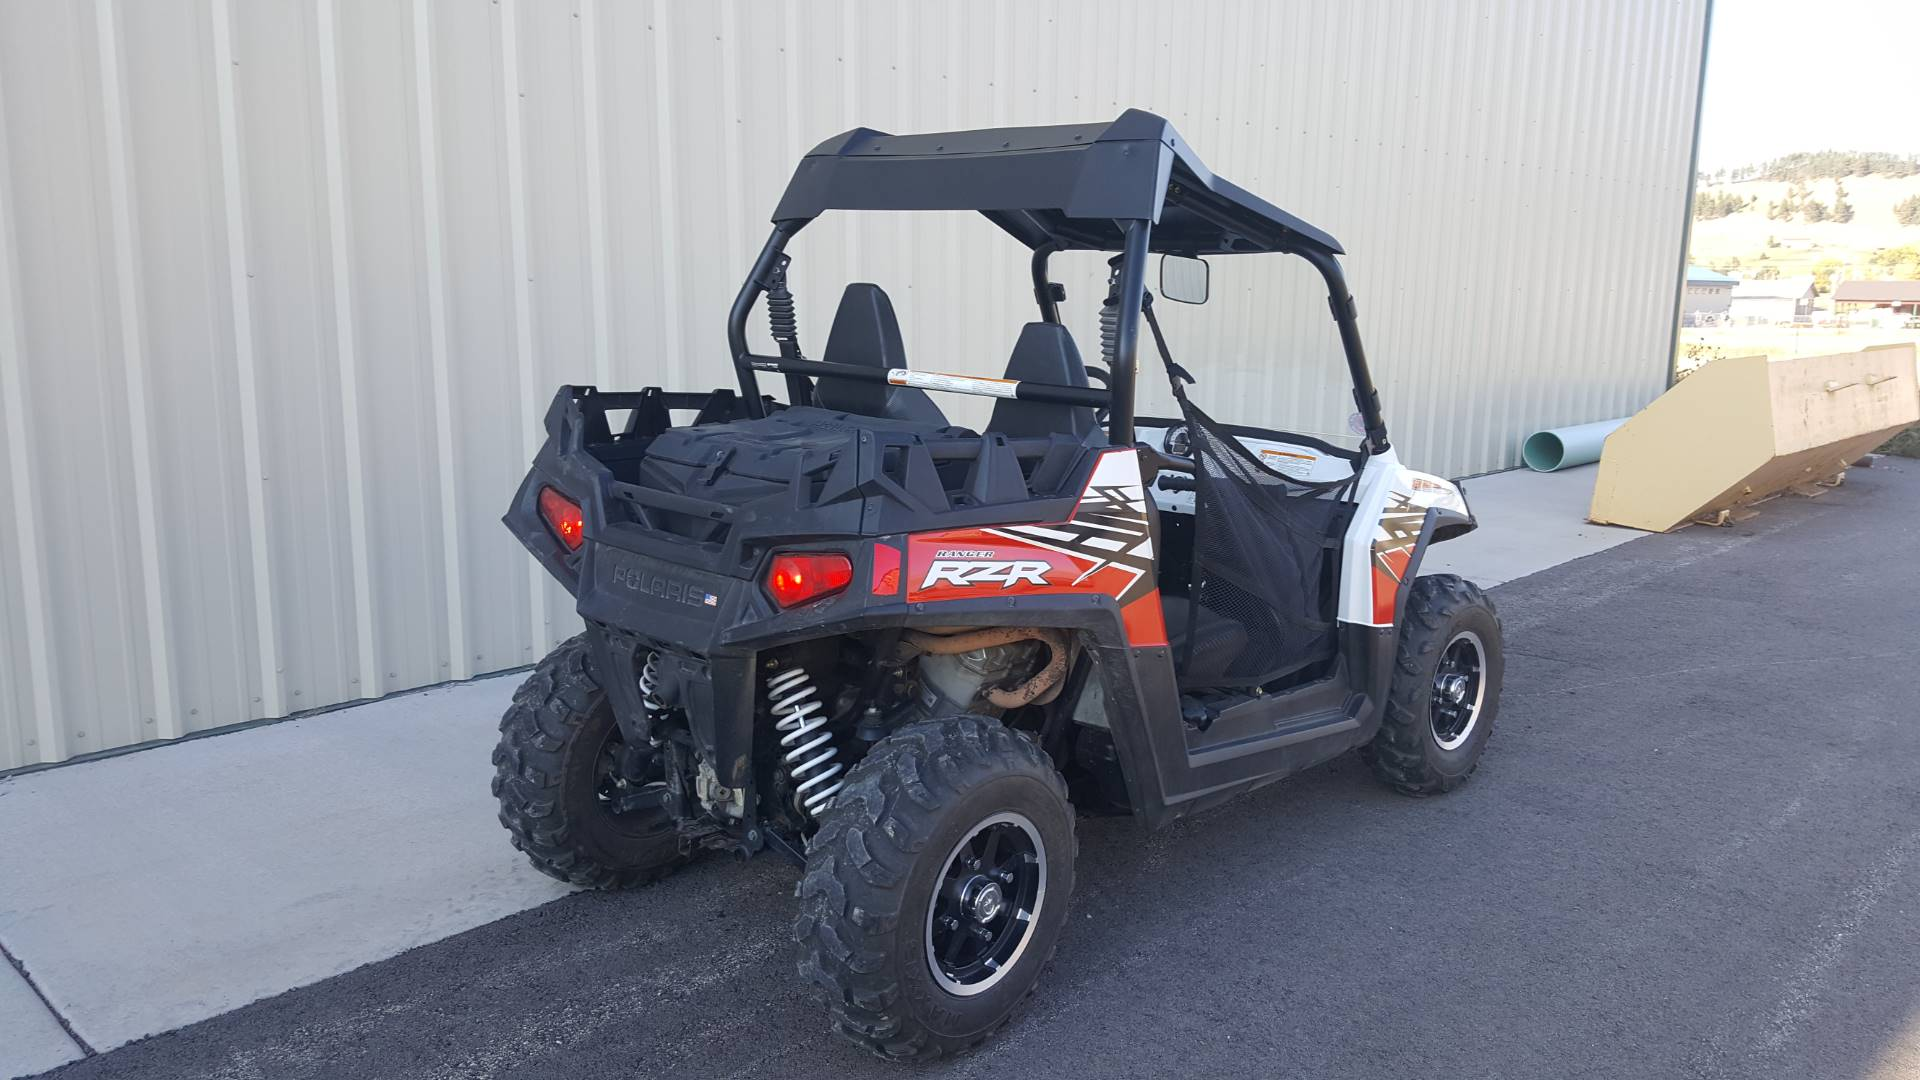 2011 Polaris Ranger RZR® 800 LE in Rapid City, South Dakota